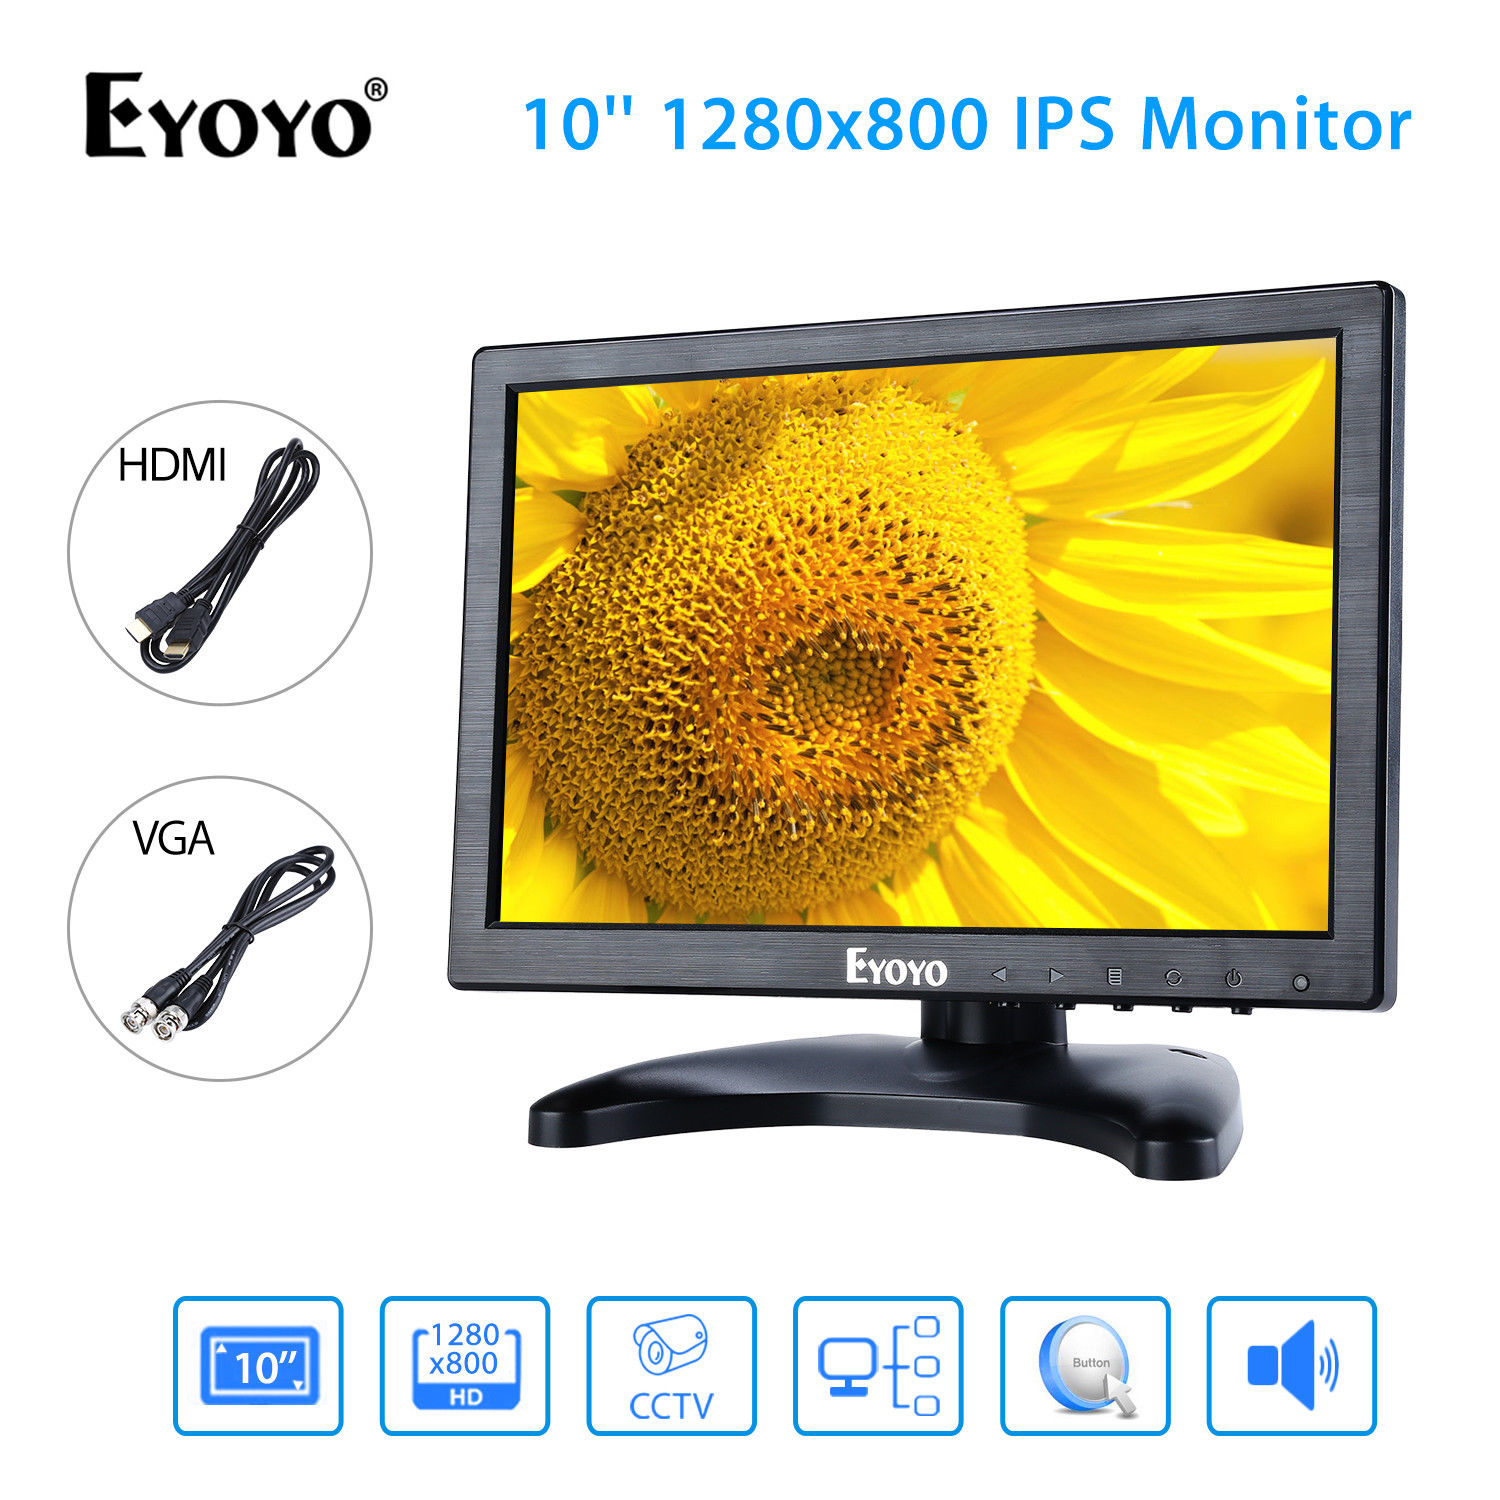 EYOYO H1016 IPS 10'' FHD Display 1280x800 VGA BNC USB Video Audio AV HDMI Monitor Black For CCTV DVD PC Laptop DVR CCD Camera escam t10 10 inch tft lcd remote color video monitor screen with vga hdmi av bnc usb for pc cctv home security system camera